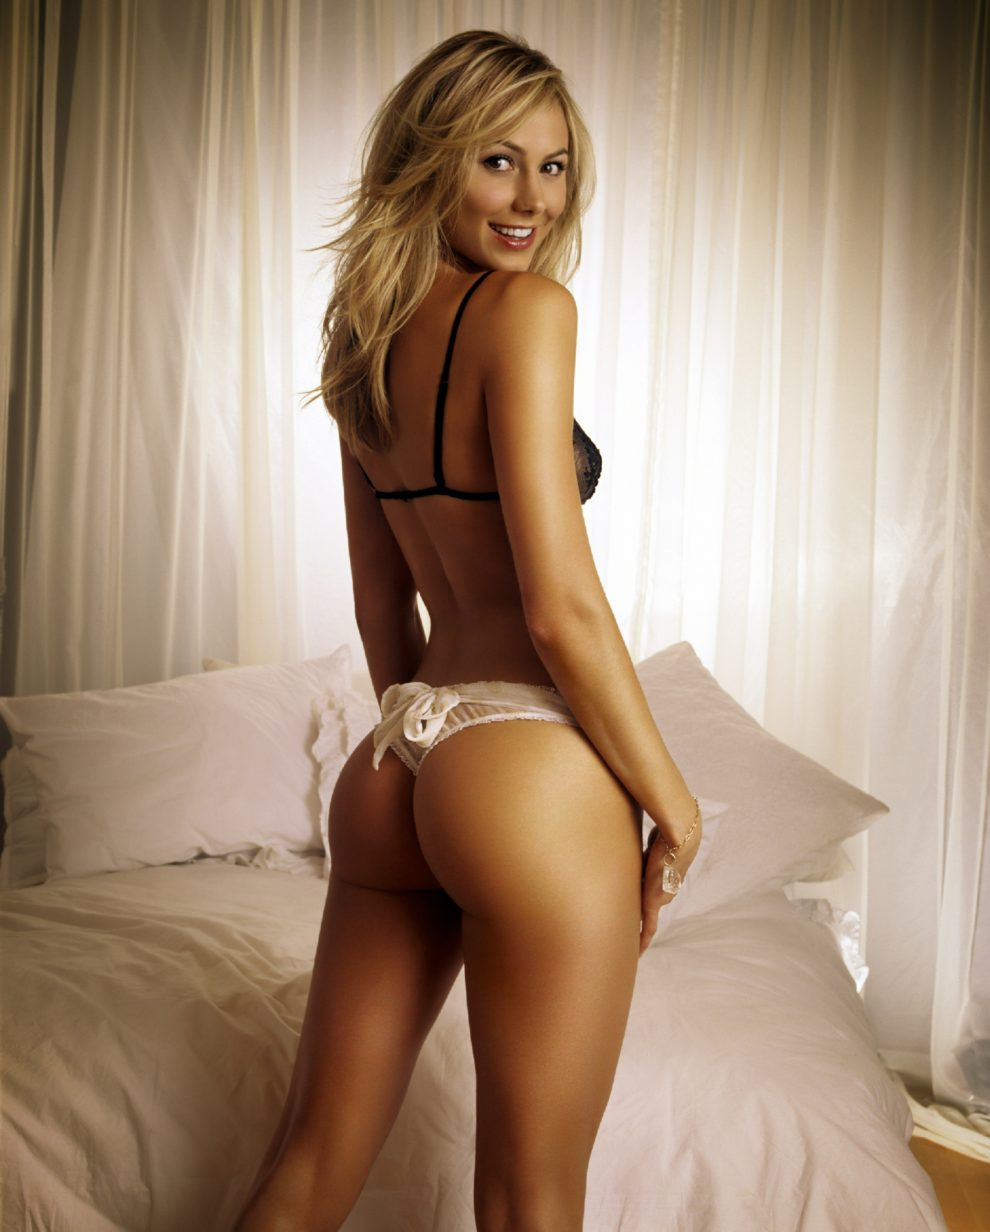 Stacy Keibler's Epic Ass